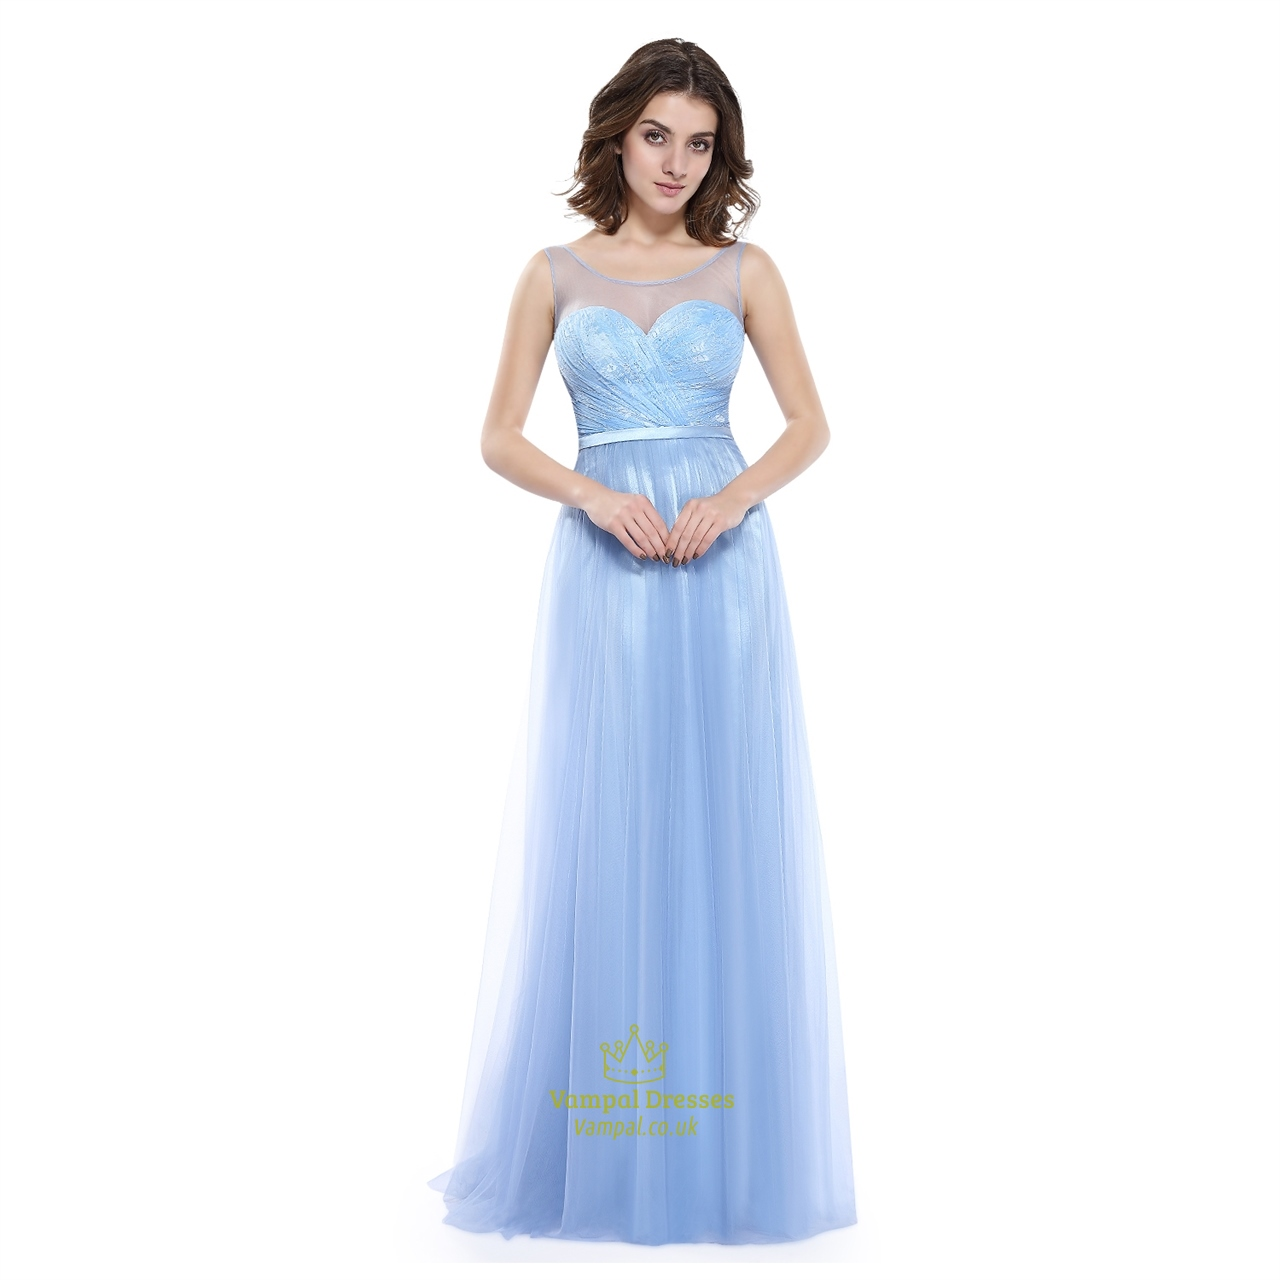 Sky Blue Lace Embellished Sweetheart Neckline Dress With Sheer Top ...